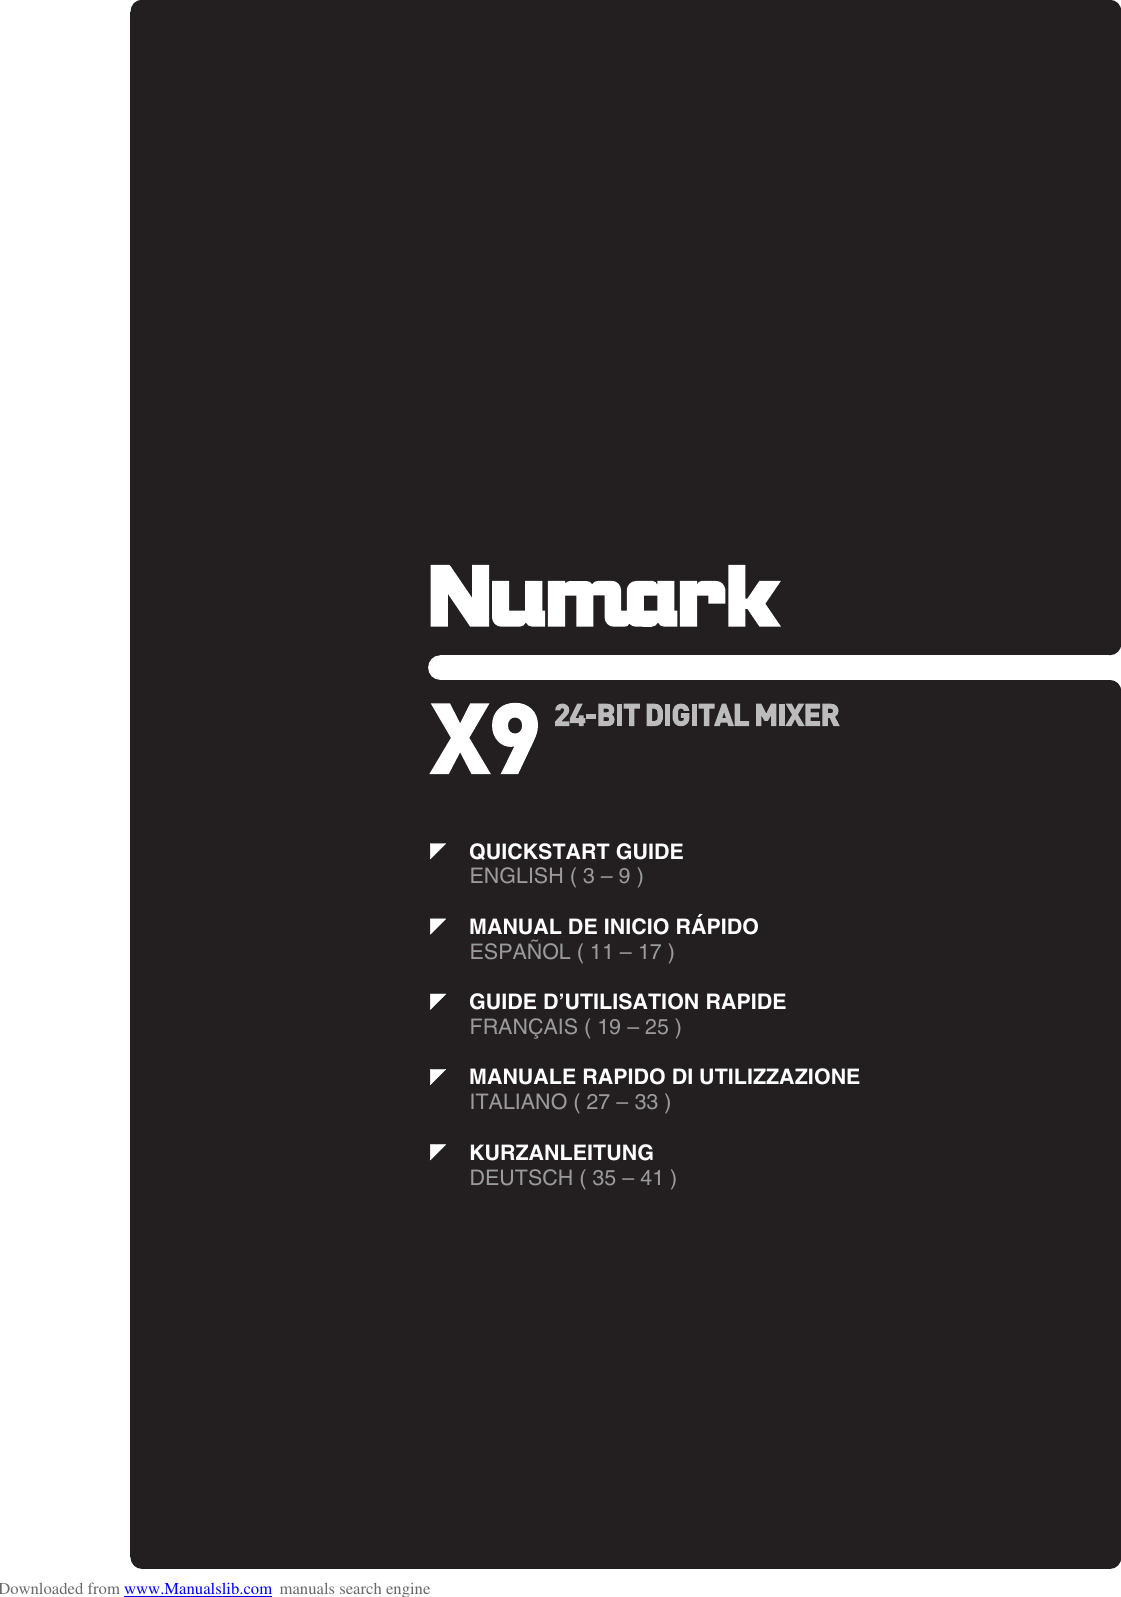 Numark X9 Quick Start Guide ManualsLib Makes It Easy To Find